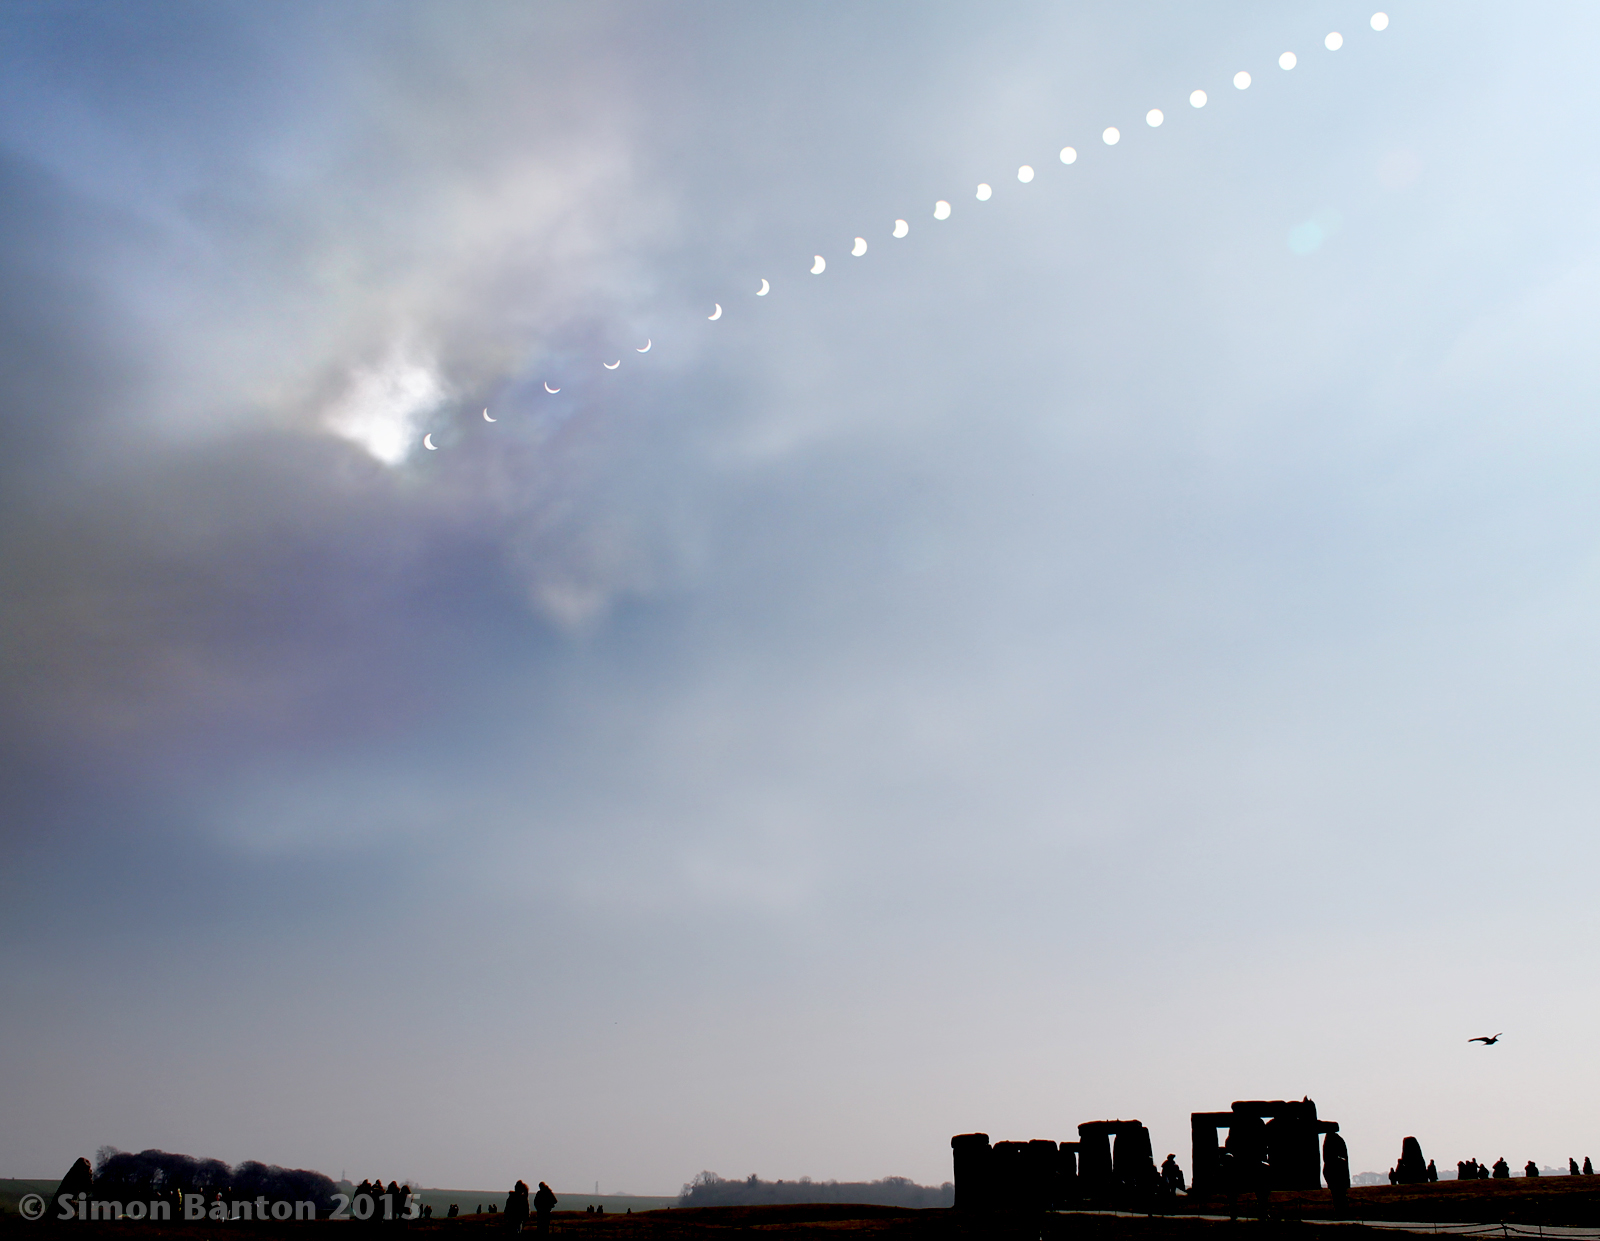 March 20th 2015 solar eclipse timelapse montage over Stonehenge